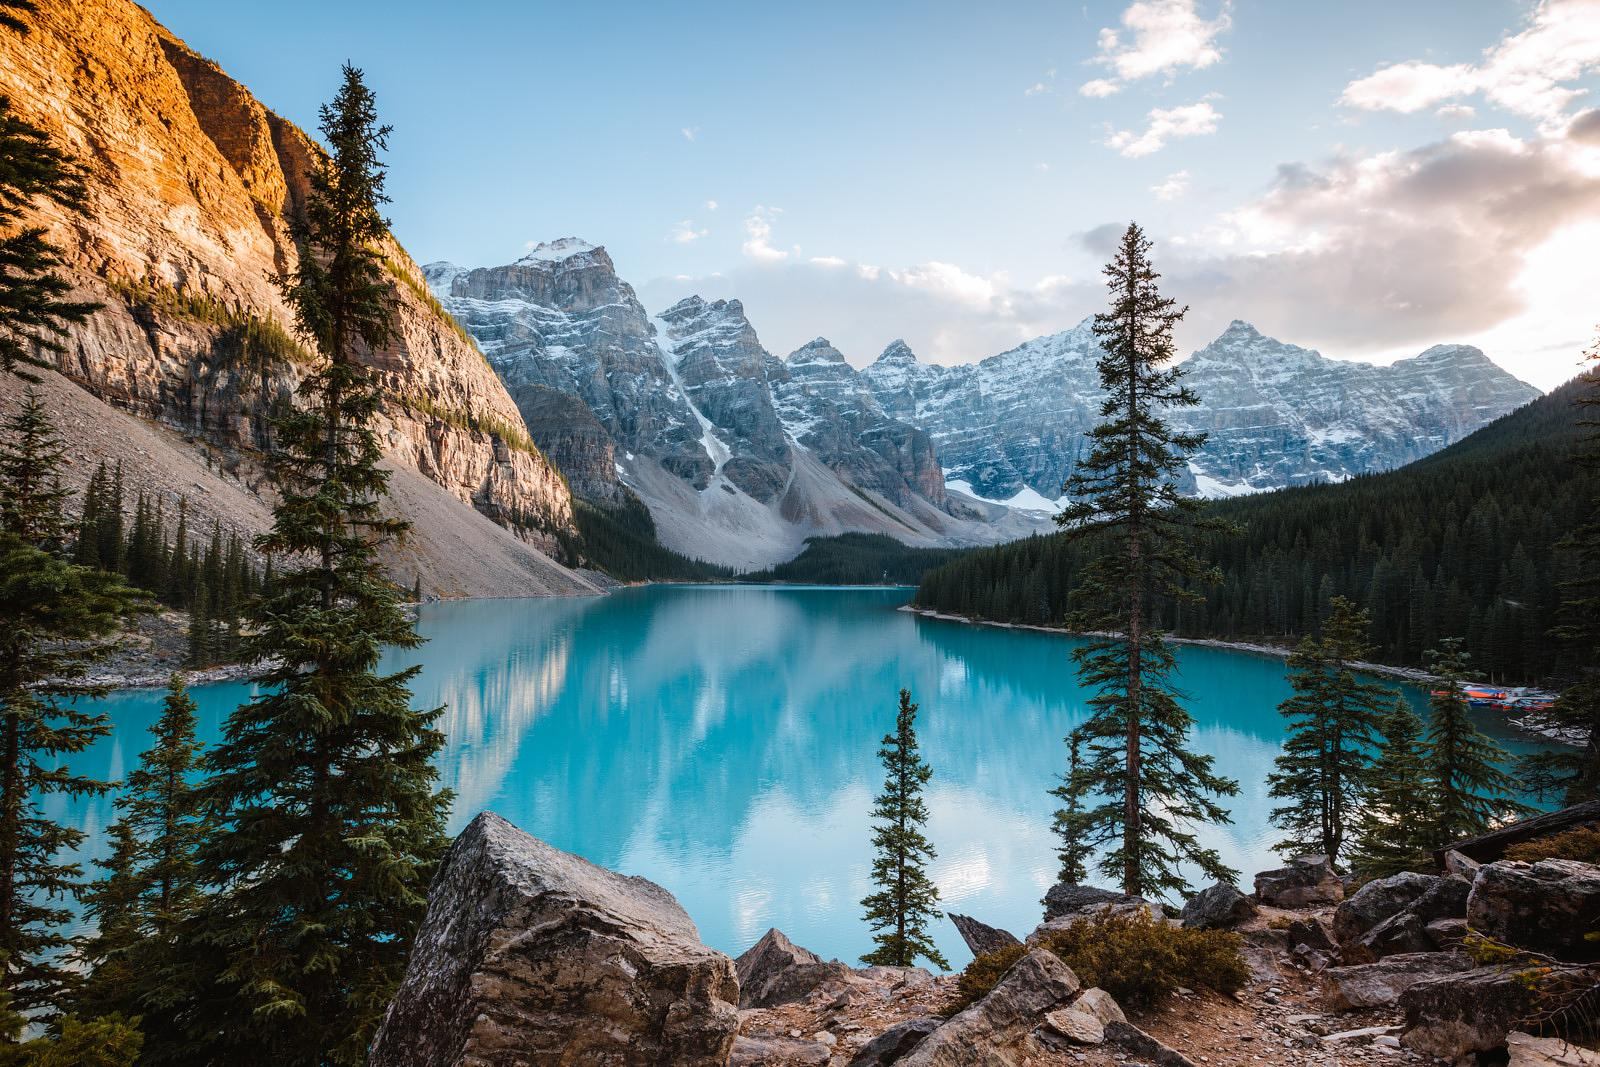 Moraine lake at sunset in autumn, Banff, Canada